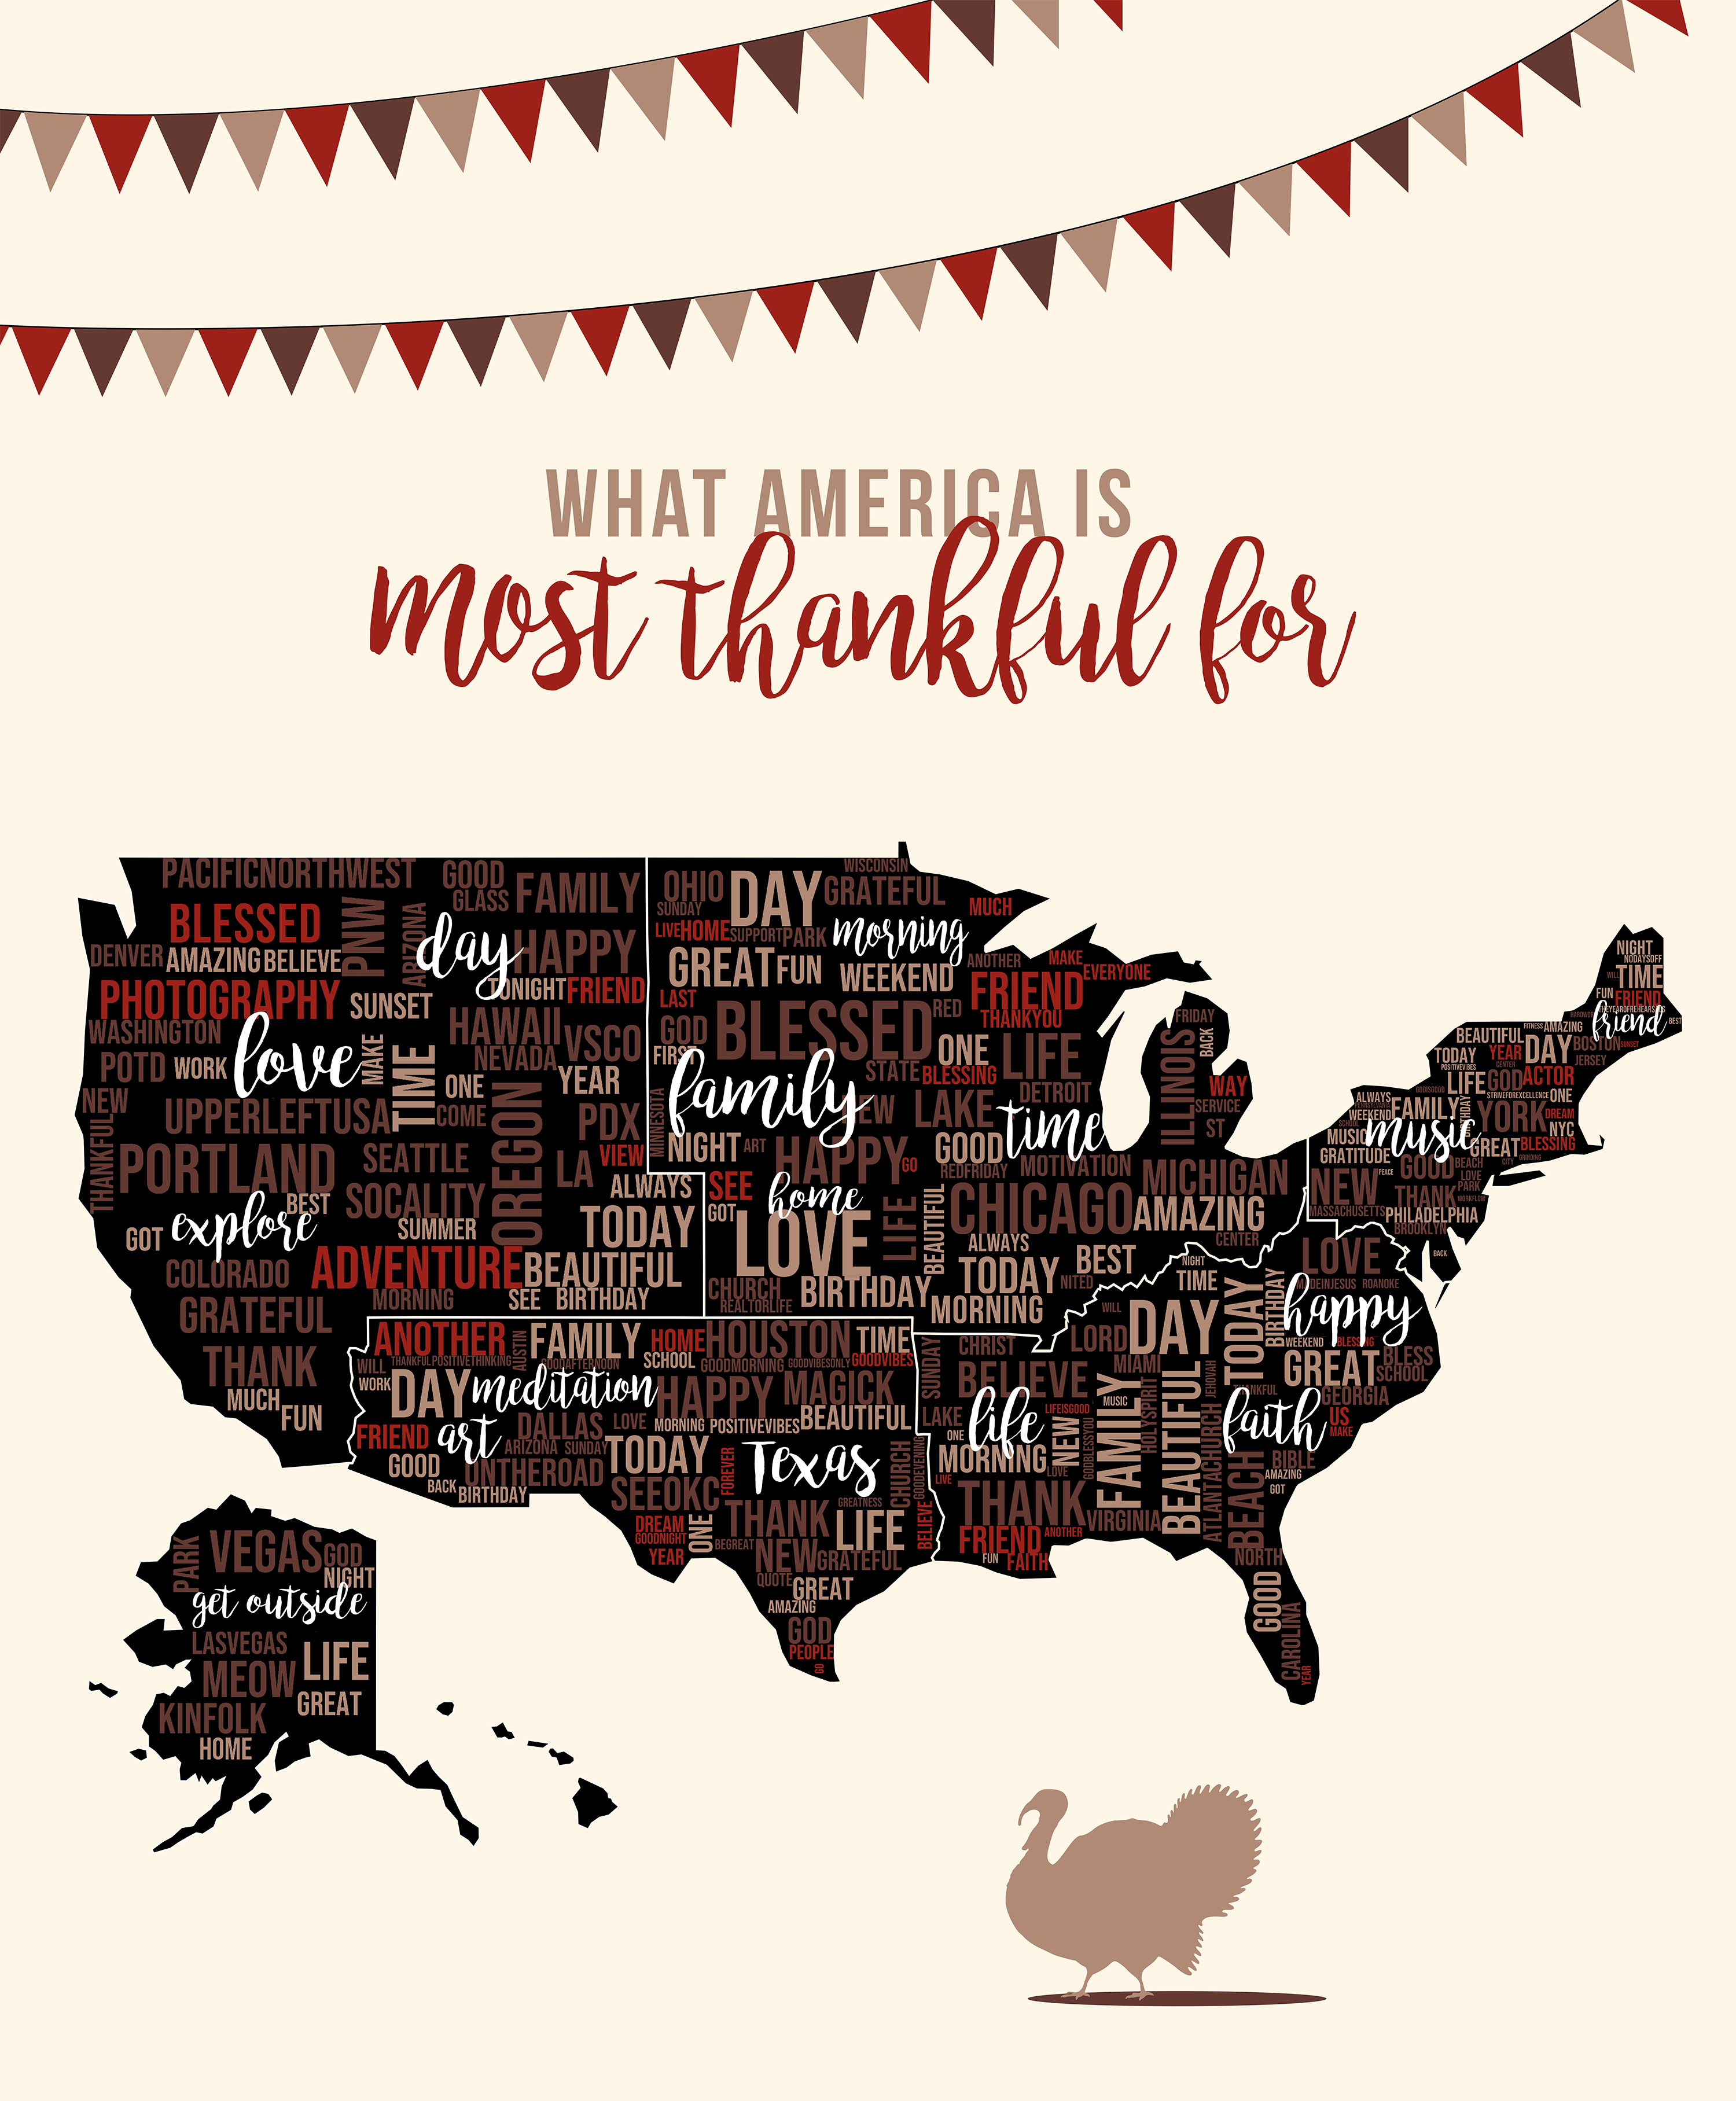 What America is Most Thankful for